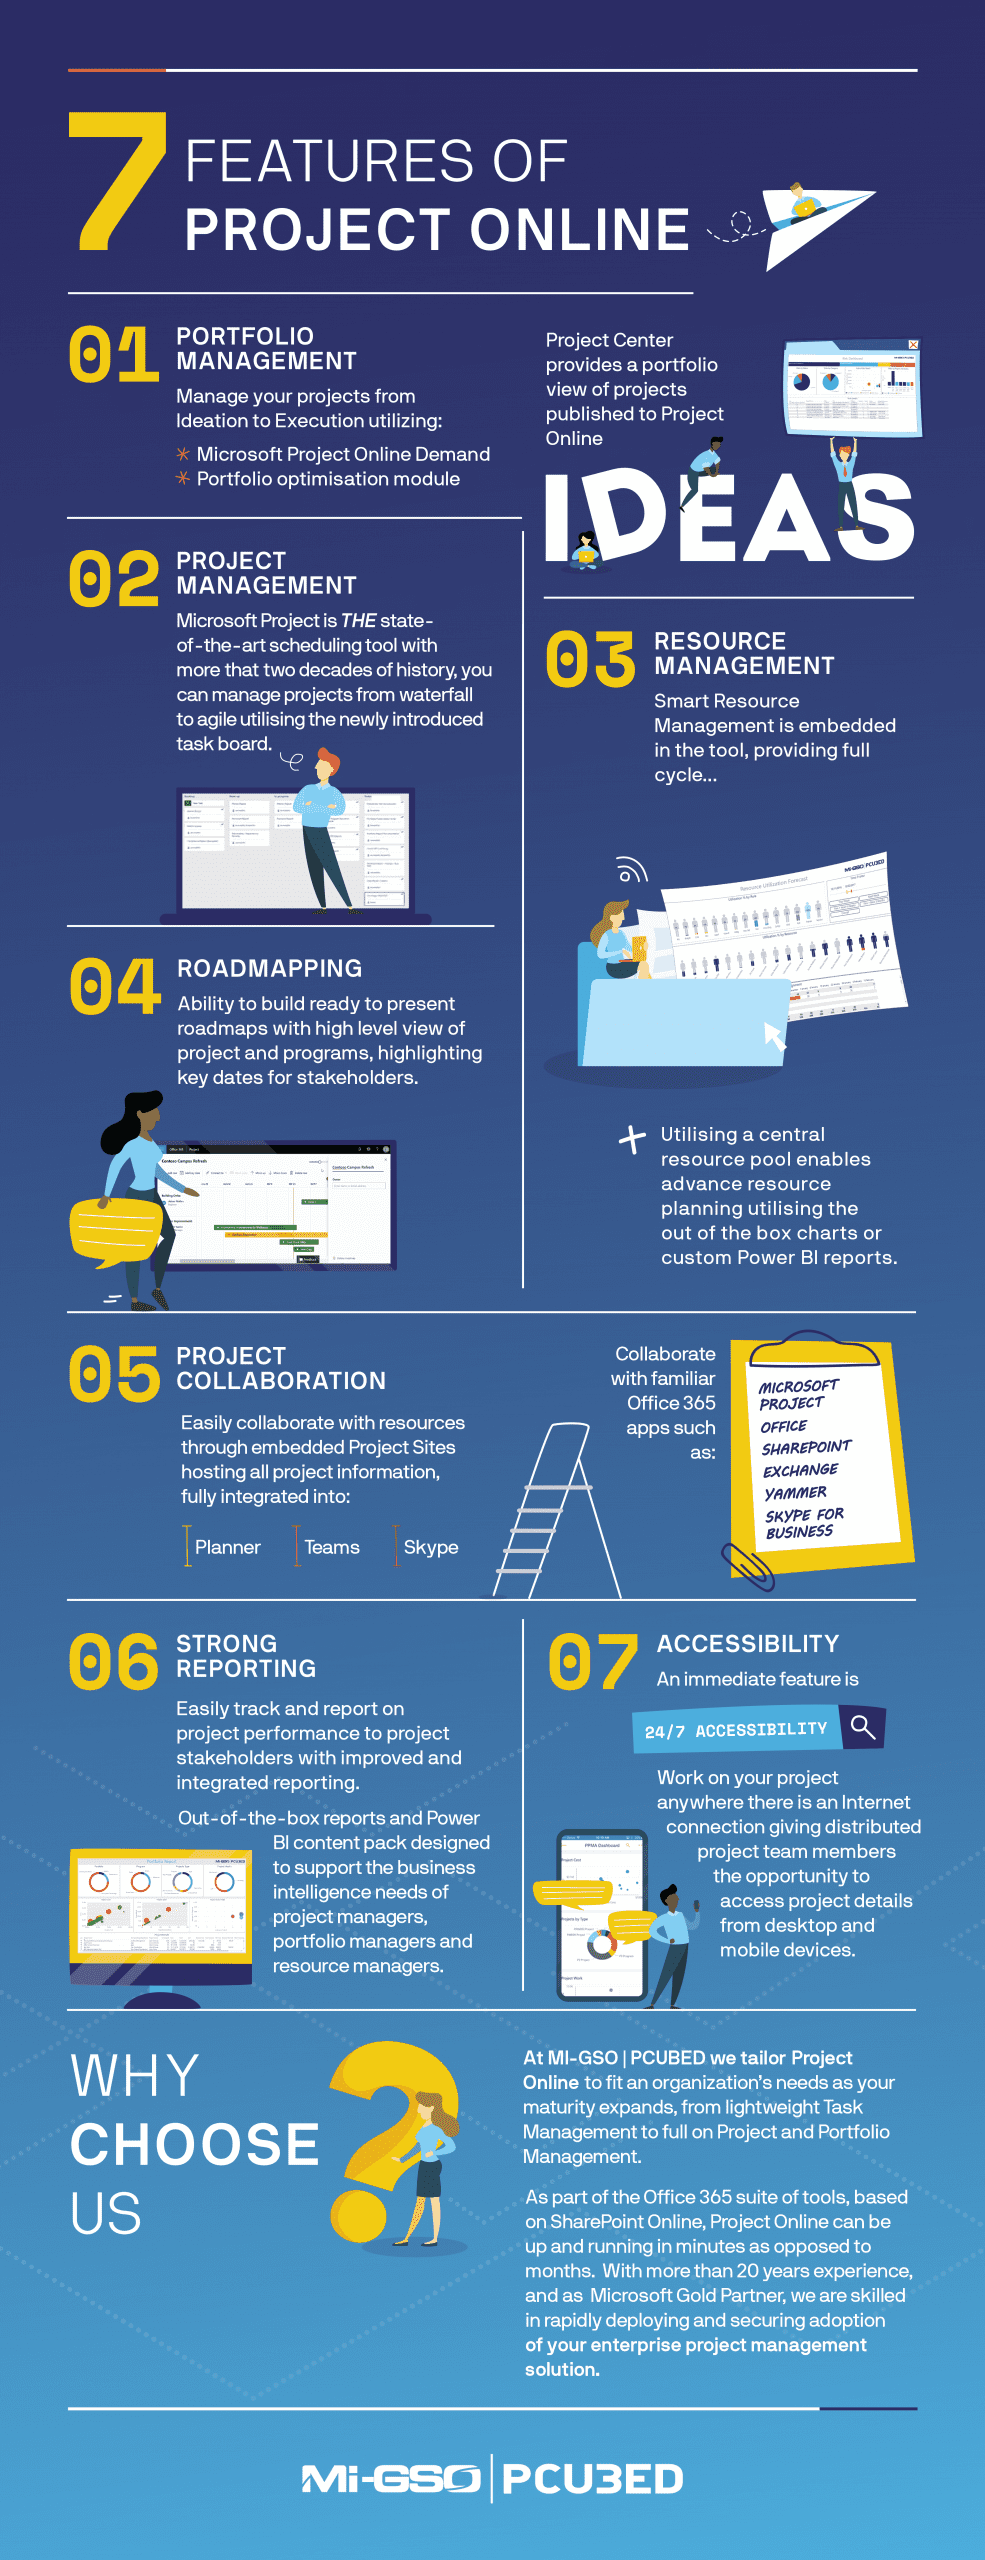 7 features of Project Online Infographic